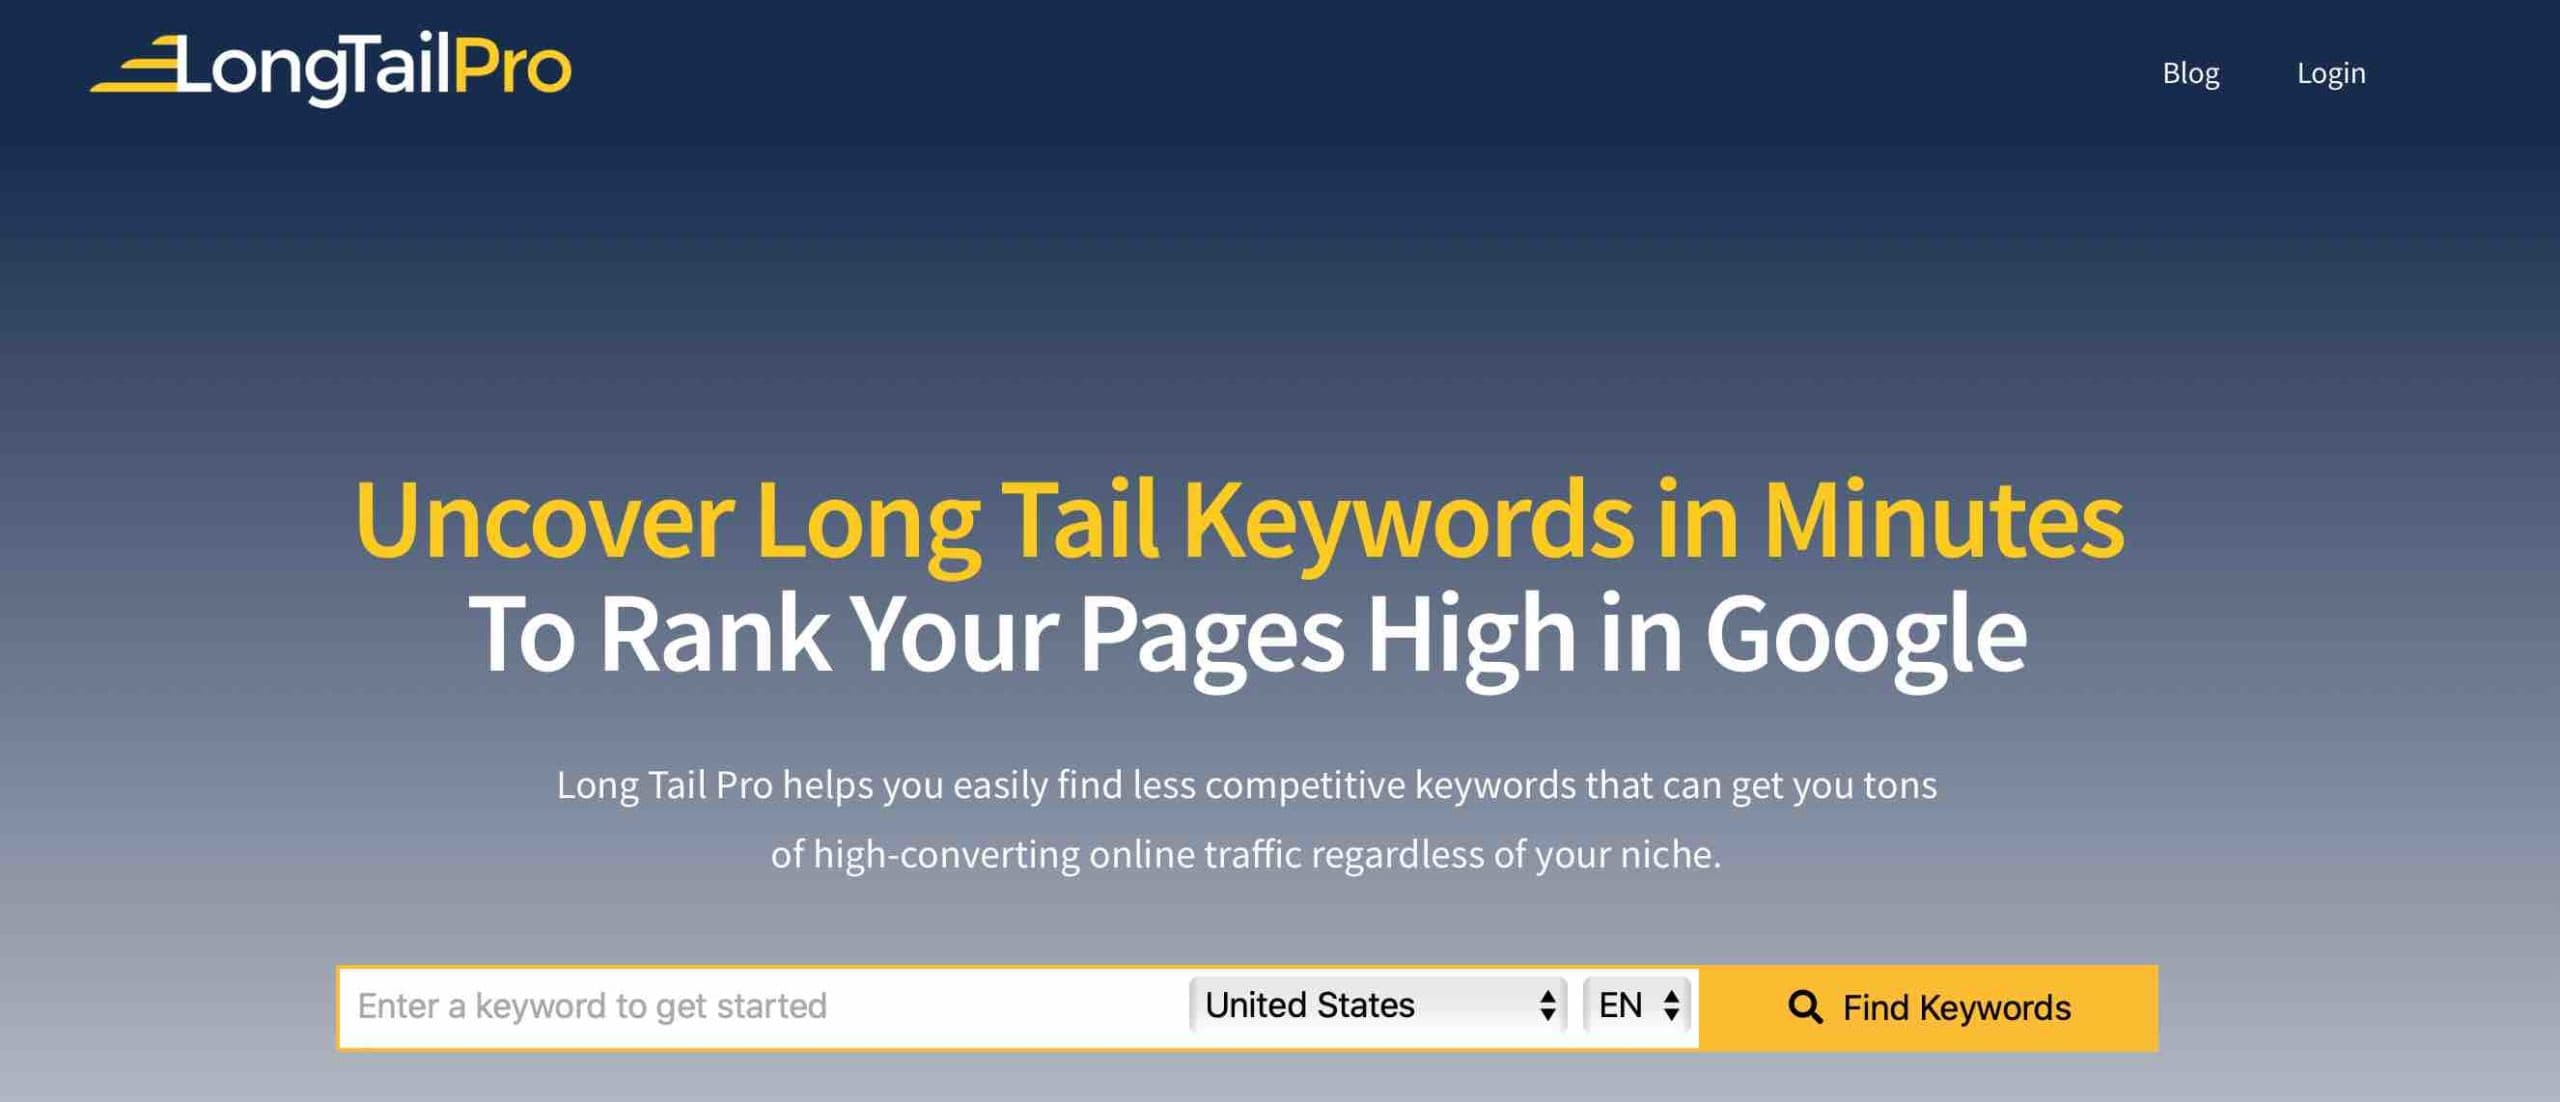 Uncover Long Tail Keywords in Minutes